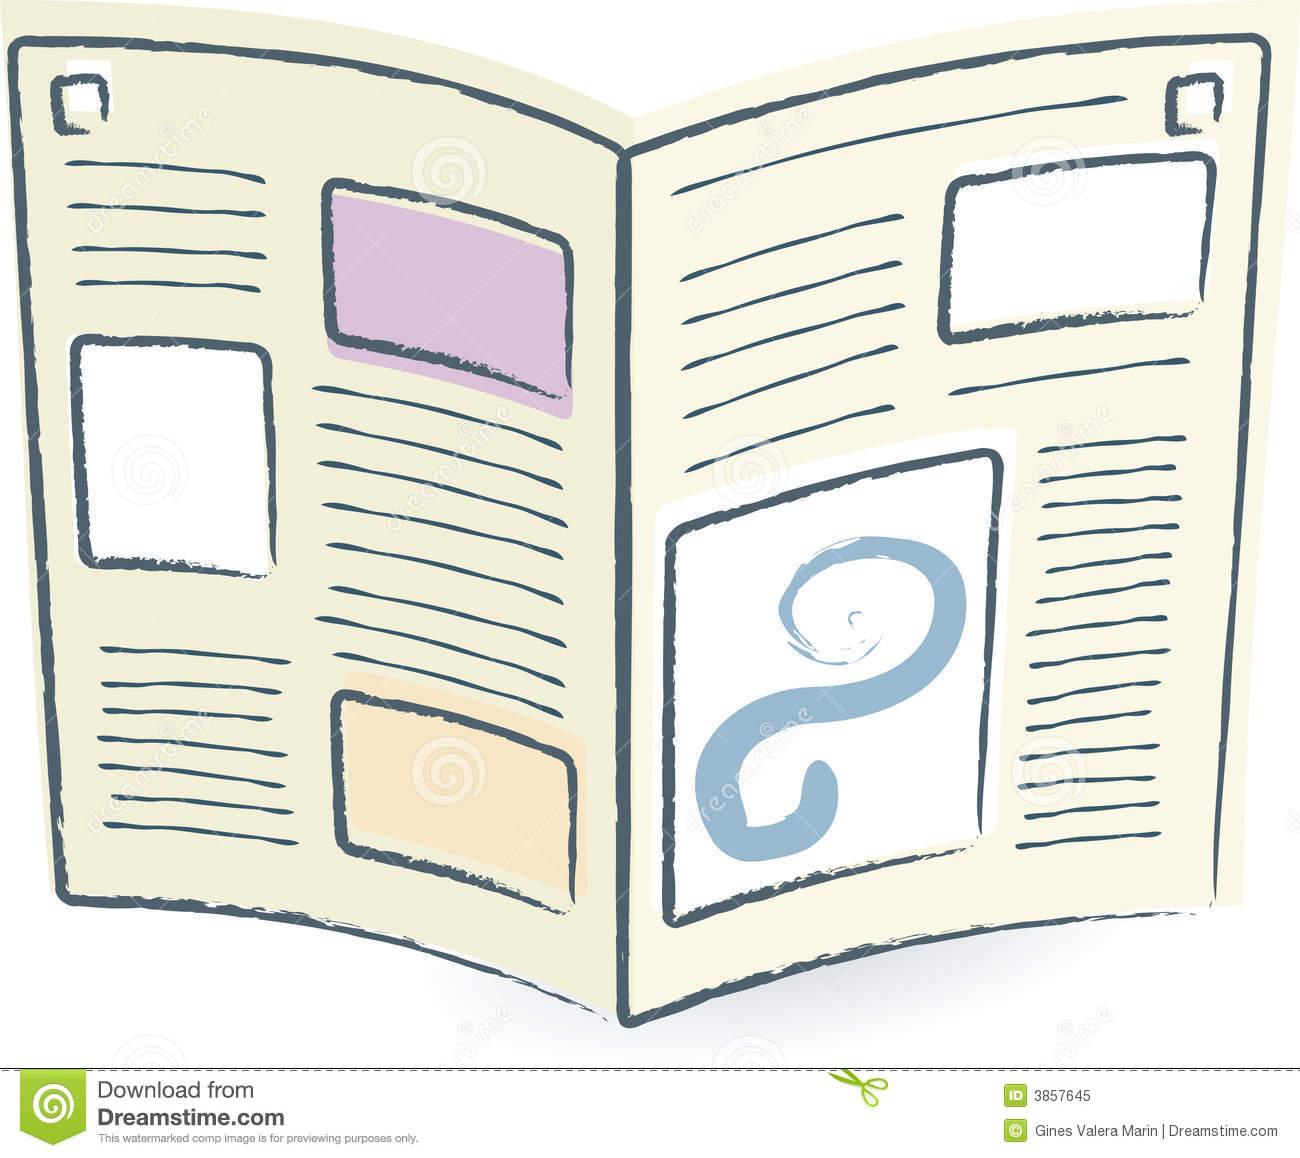 clipart for newspaper - photo #49